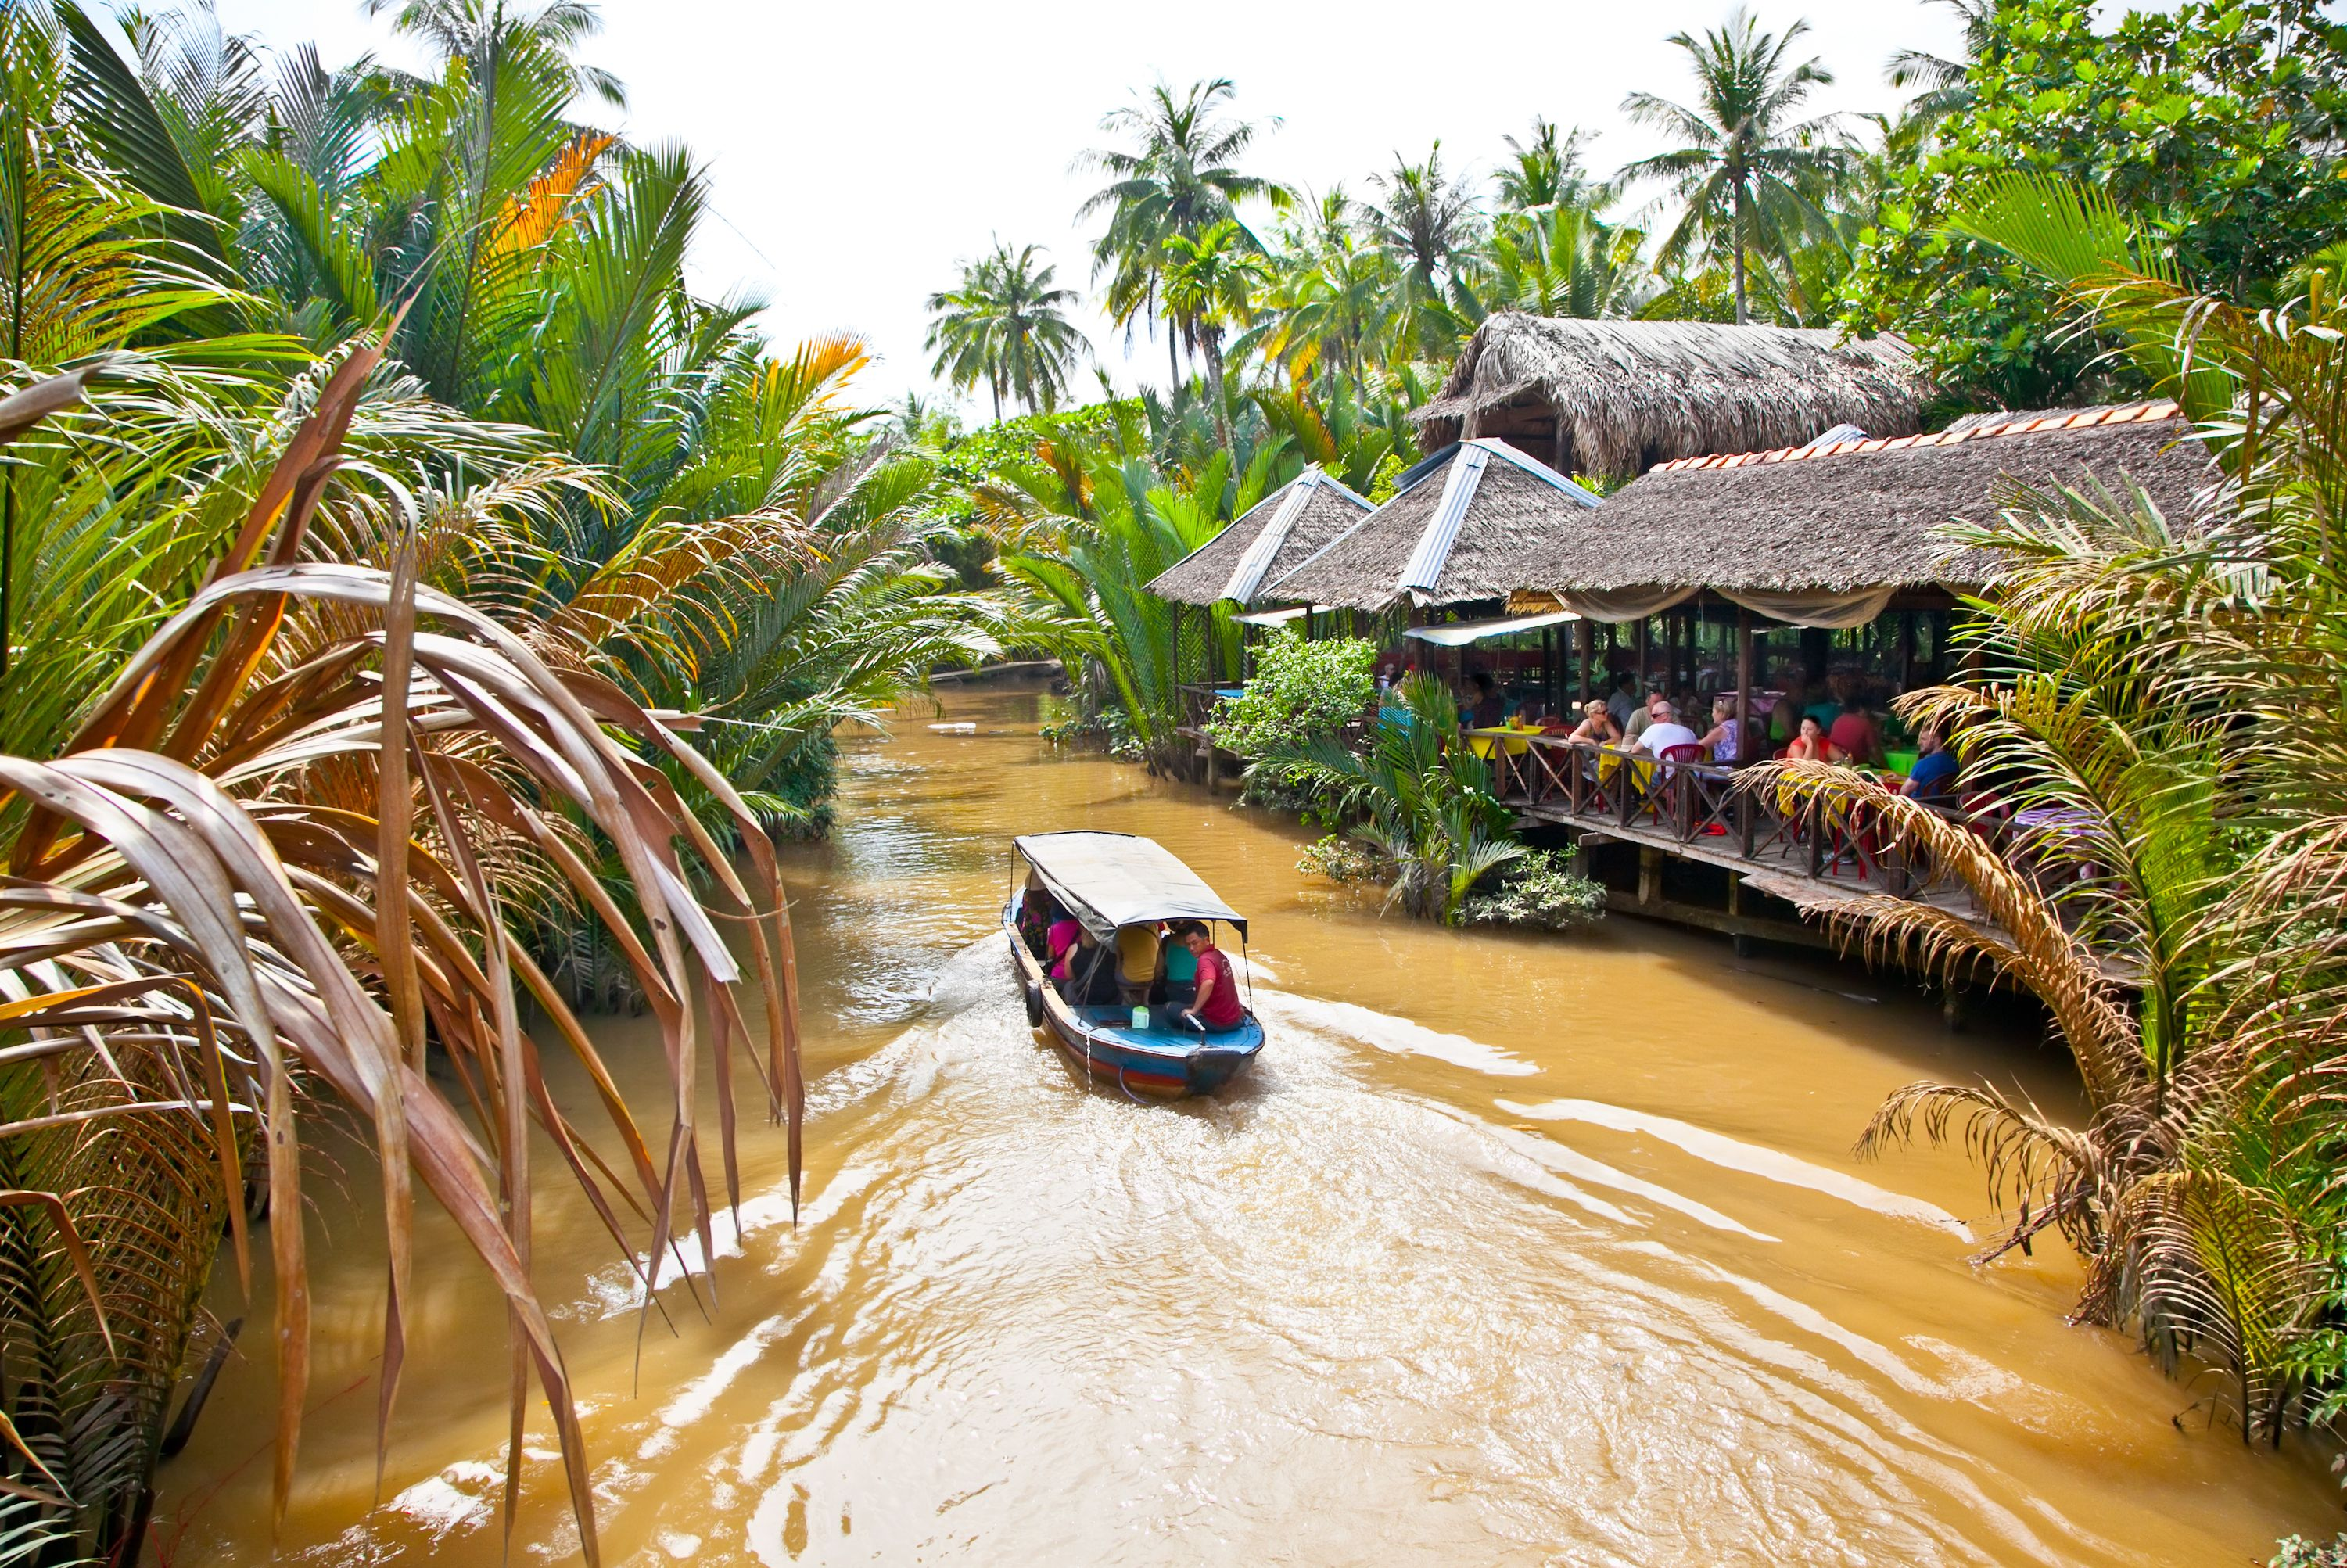 Full-day Overview Mekong Delta (My Tho & Ben Tre)